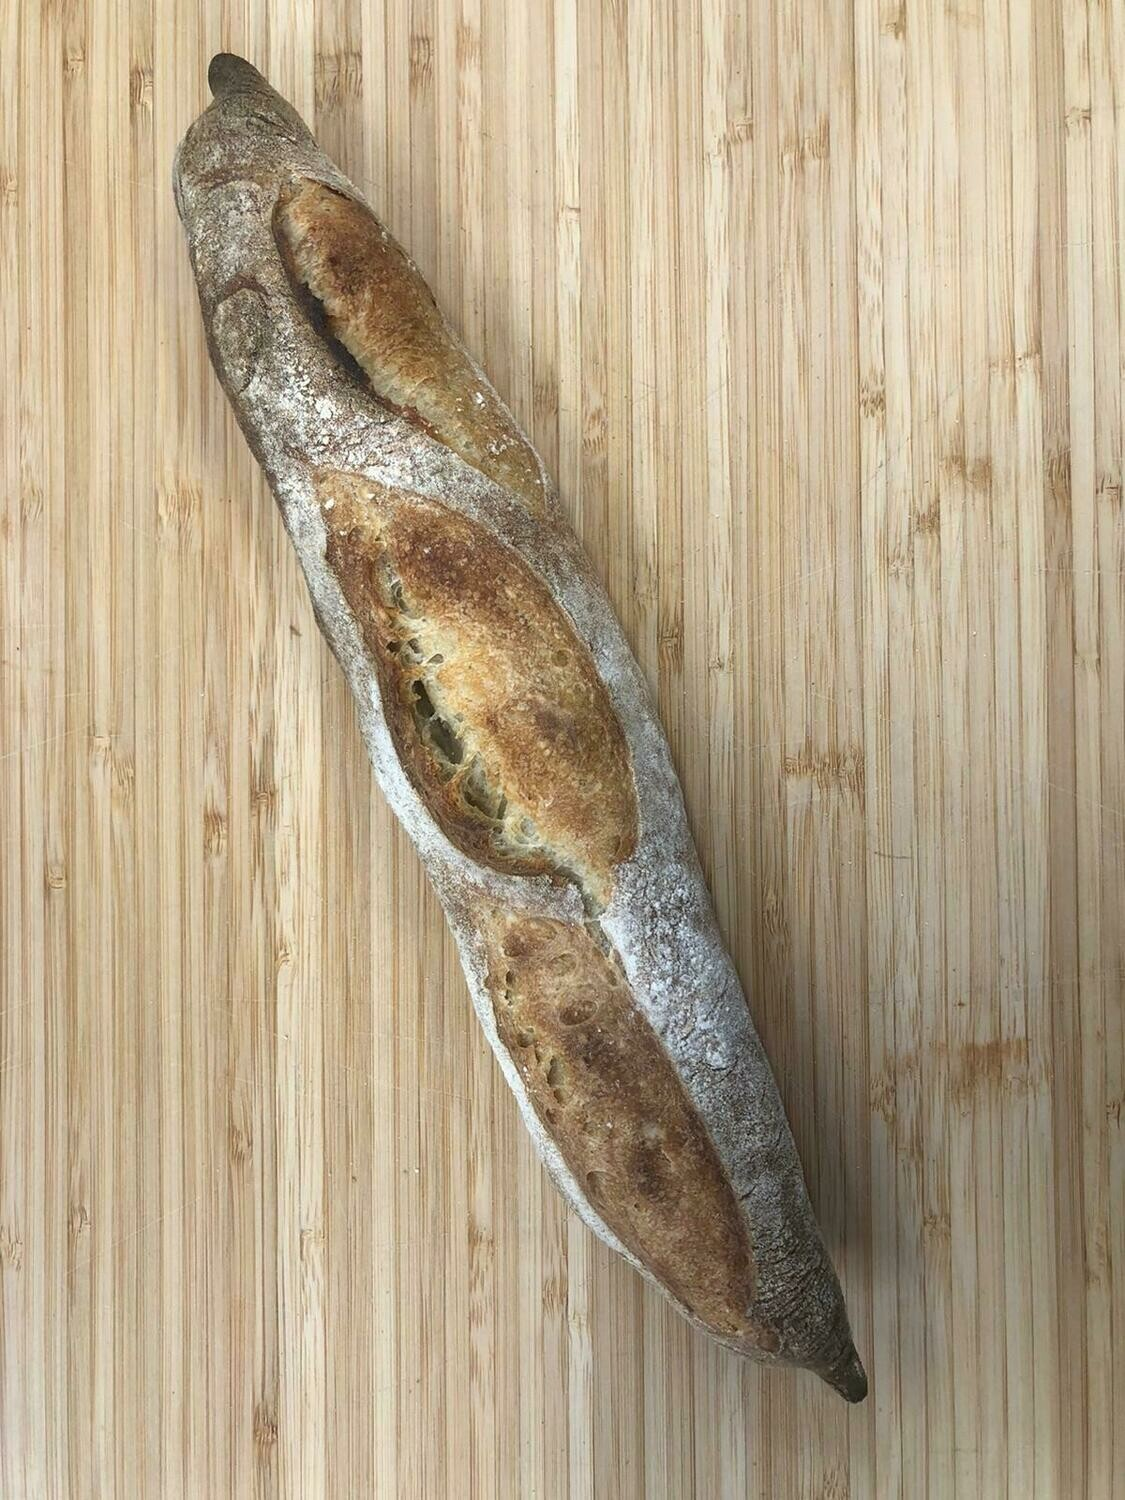 Sourdough Baguettes (4 in total)